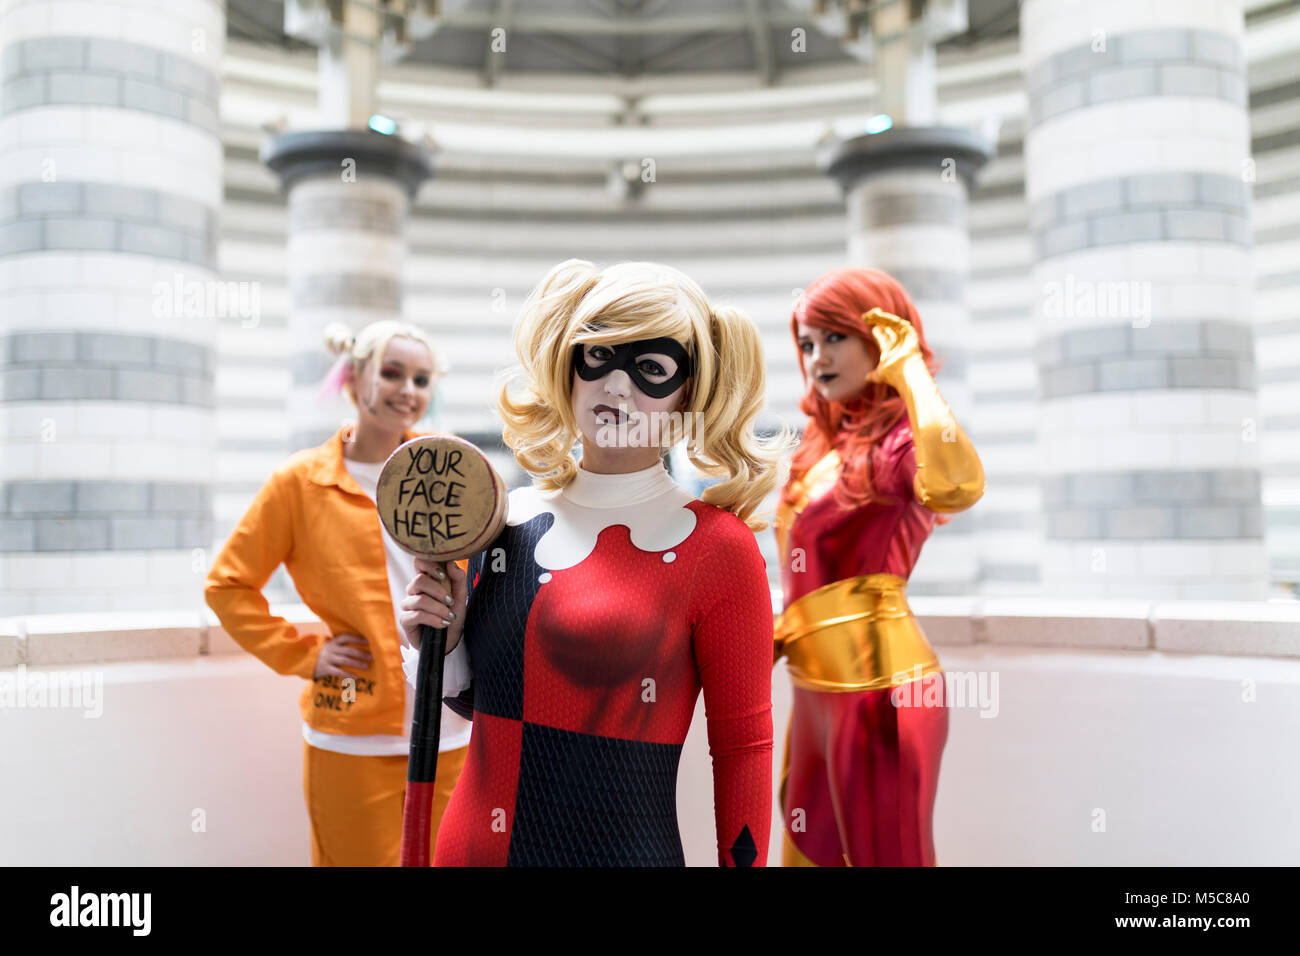 Doncaster Comic Con 11th Feruary 2018 at The Doncaster Dome UK. Three young women cosplay as Harley Quinn Suicidé - Stock Image